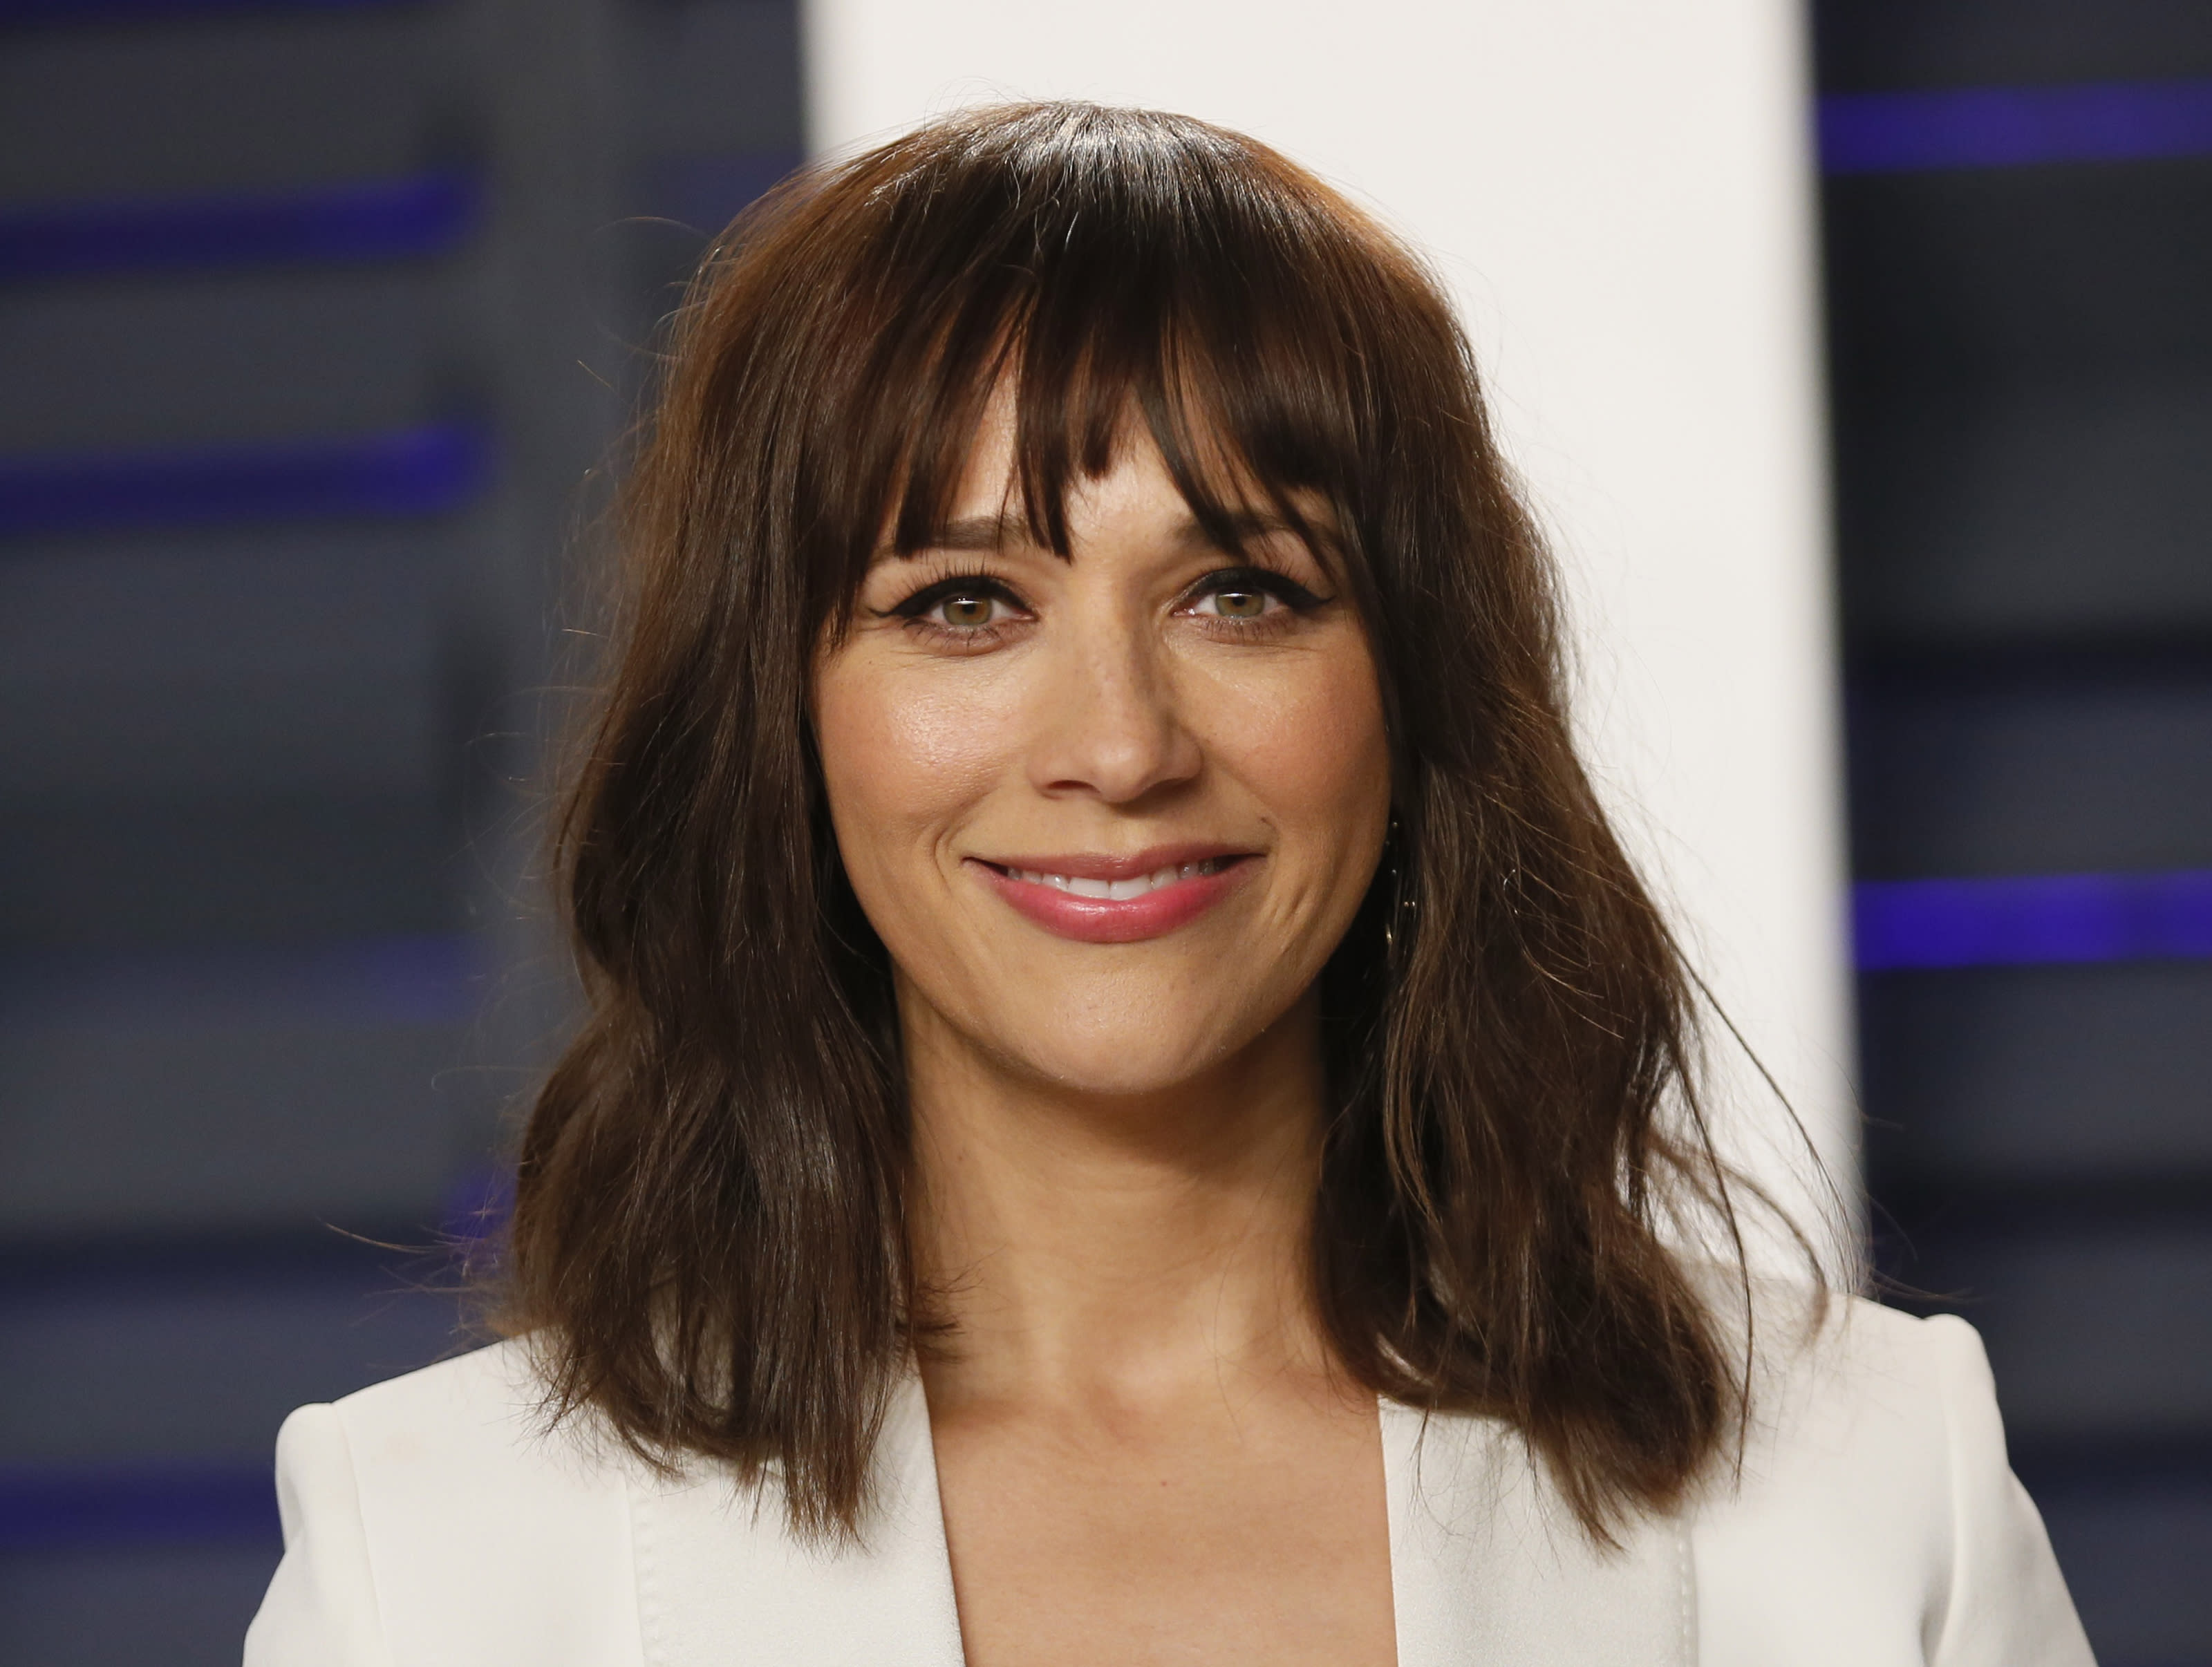 Rashida Jones on Black Lives Matter protests: 'This is the time to show what kind of country we can be'